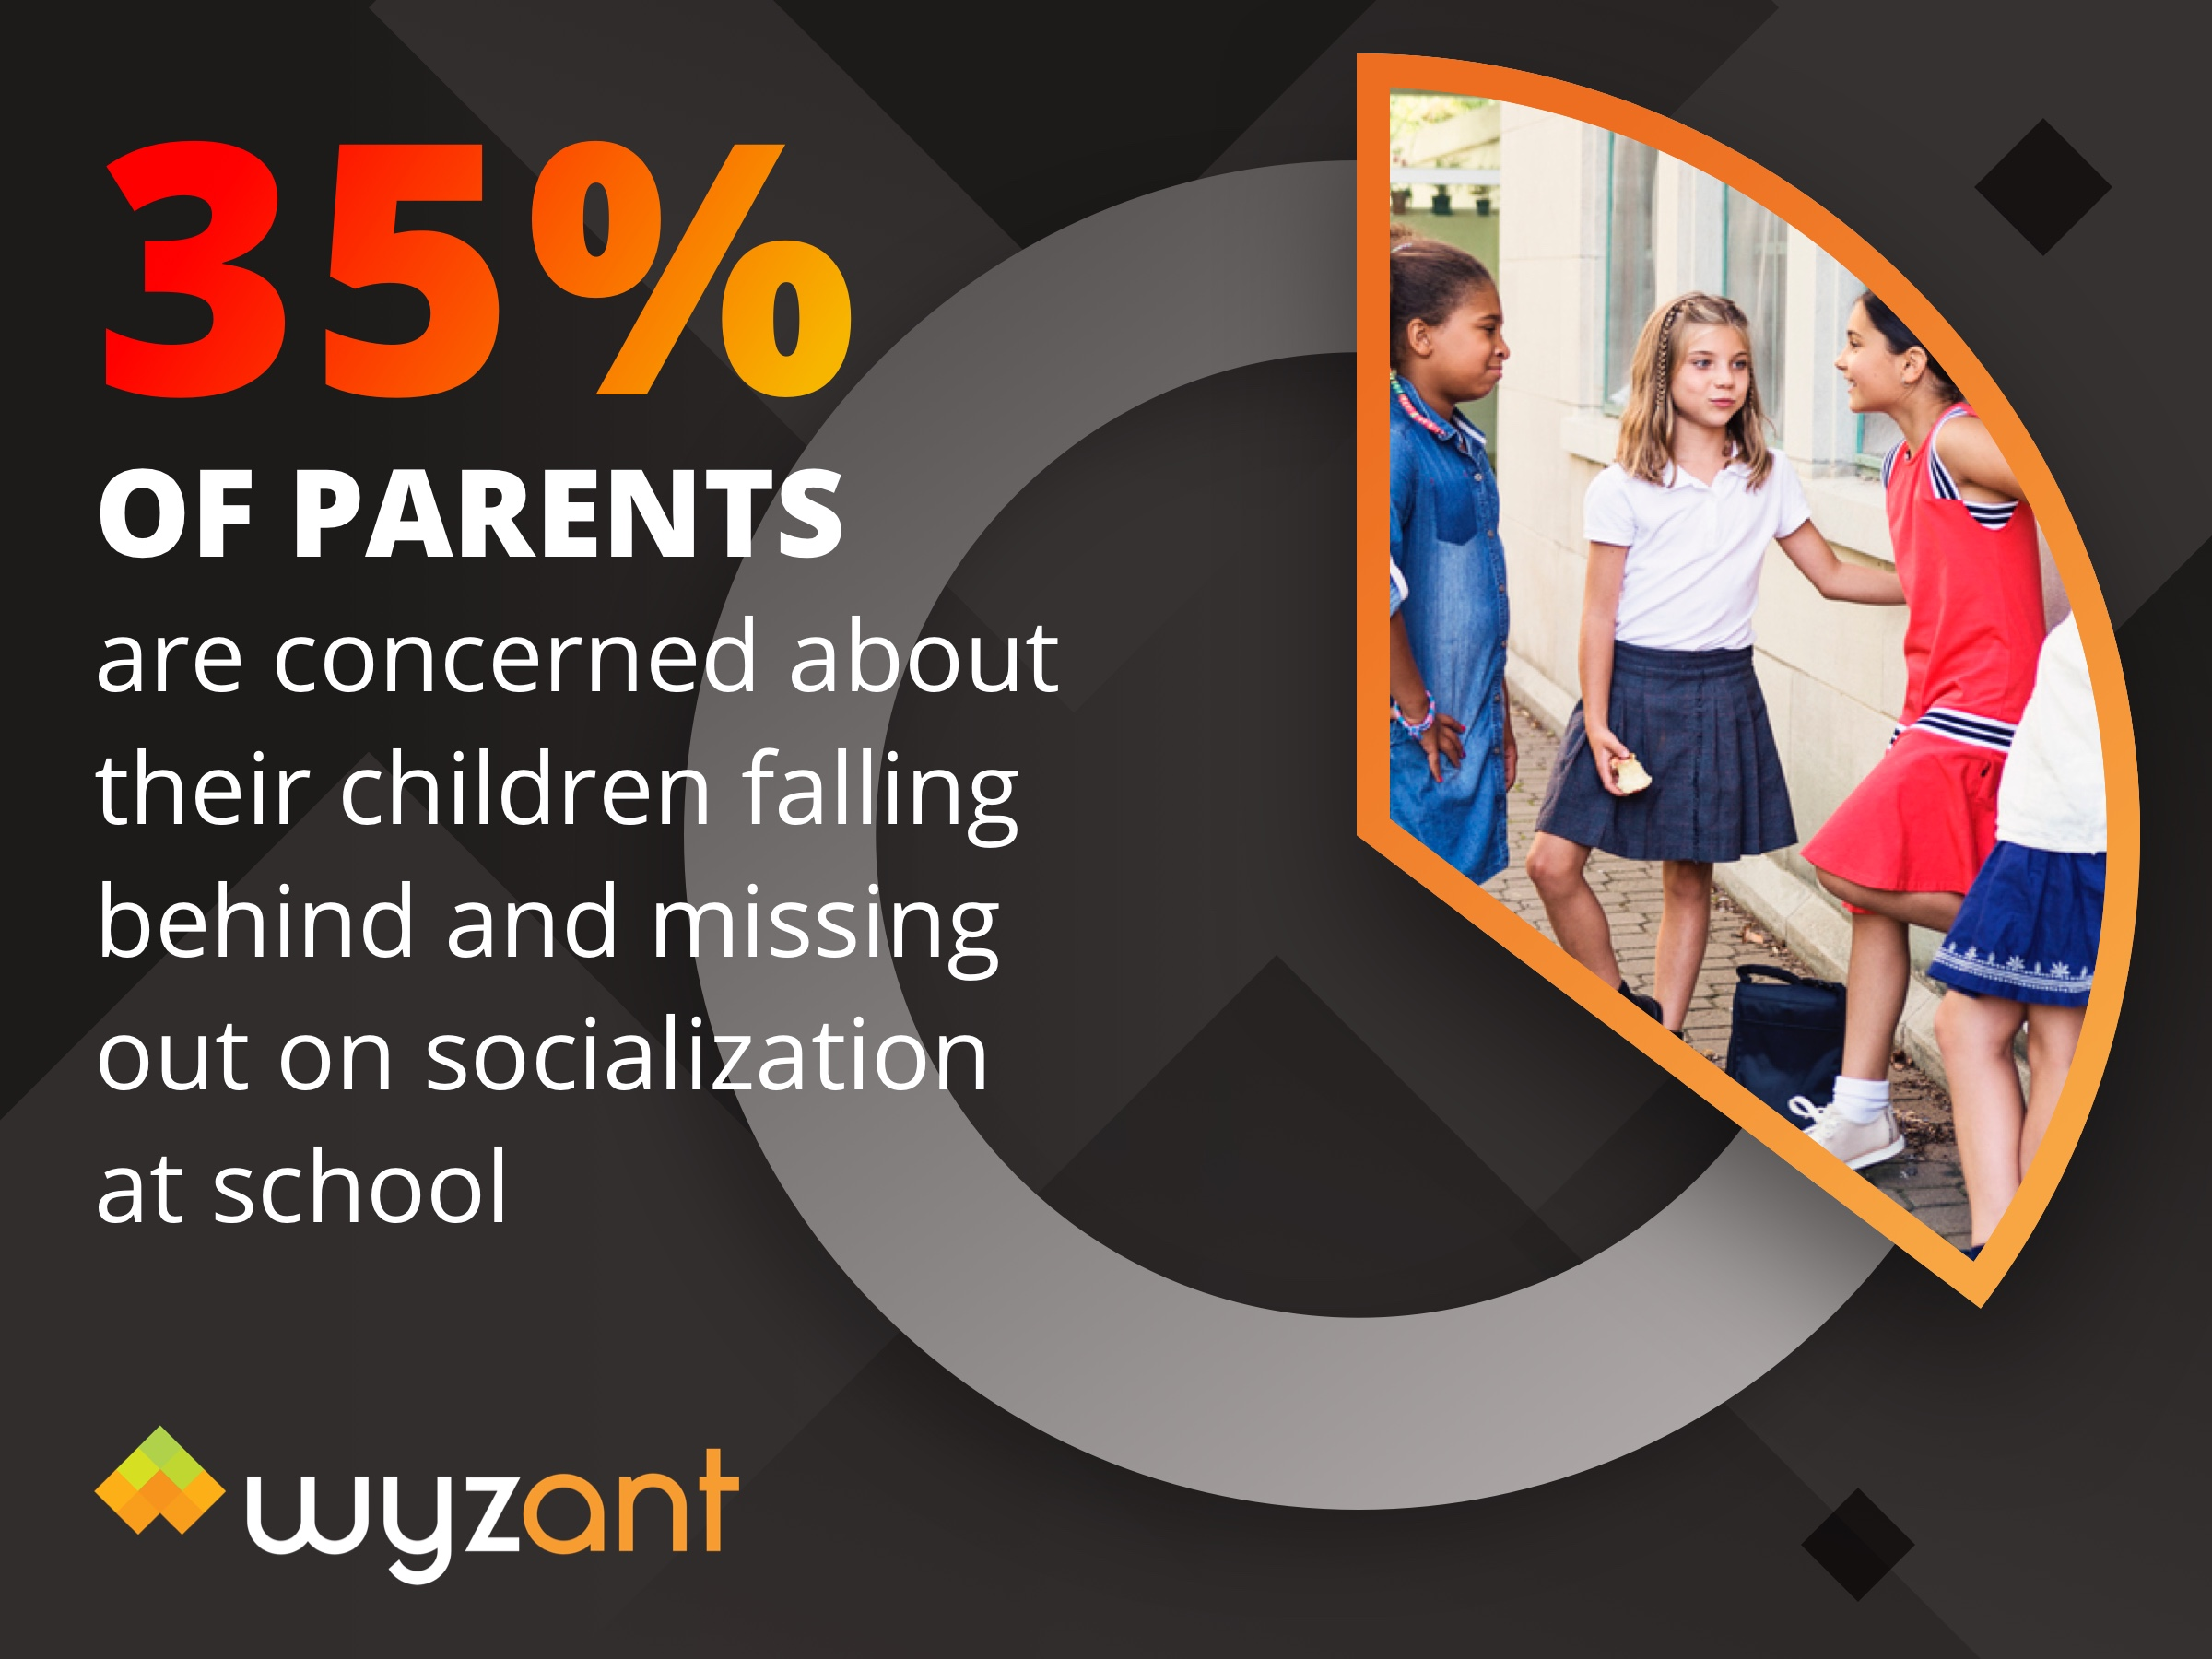 35 of parents are concerned about their children missing out on socialization at school